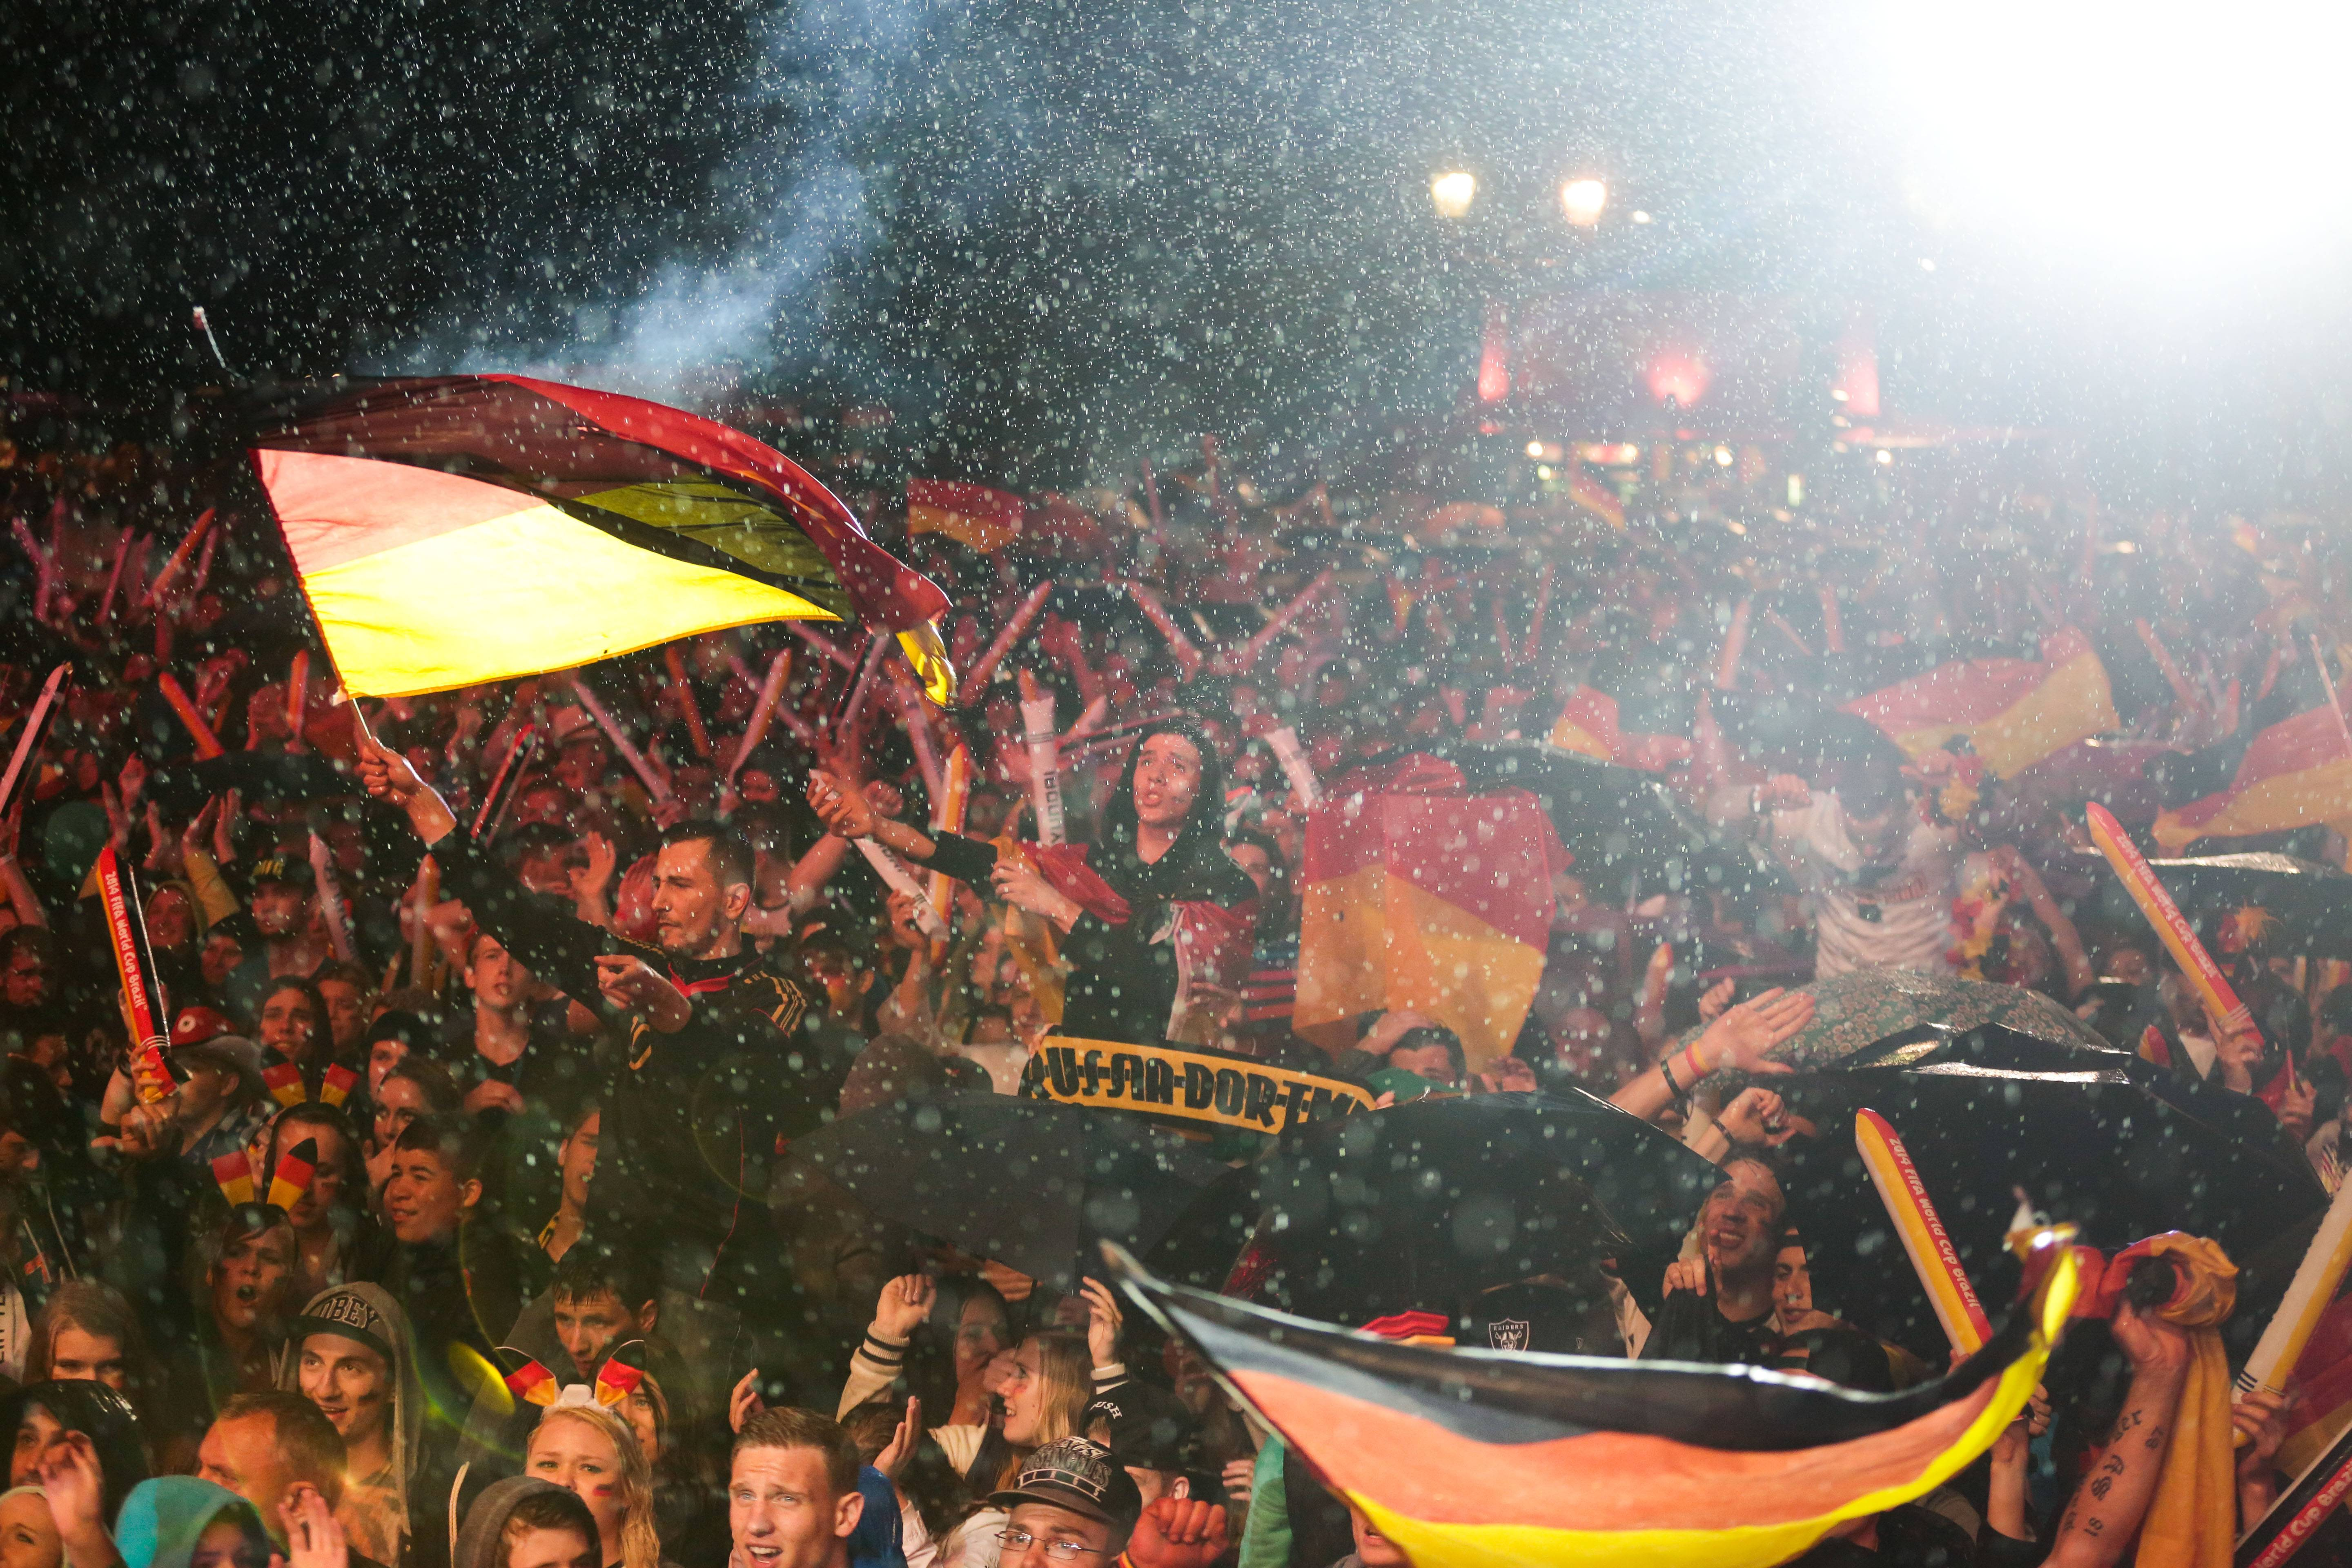 German soccer fans celebrate the kick off of the Brazil World Cup round of 16 soccer match between Germany and Algeria during heavy rain at a public viewing event in Berlin, Monday, June 30, 2014.  Germany plays Algeria at the Estadio Beira-Rio in Porto Alegre, Brazil, Monday.